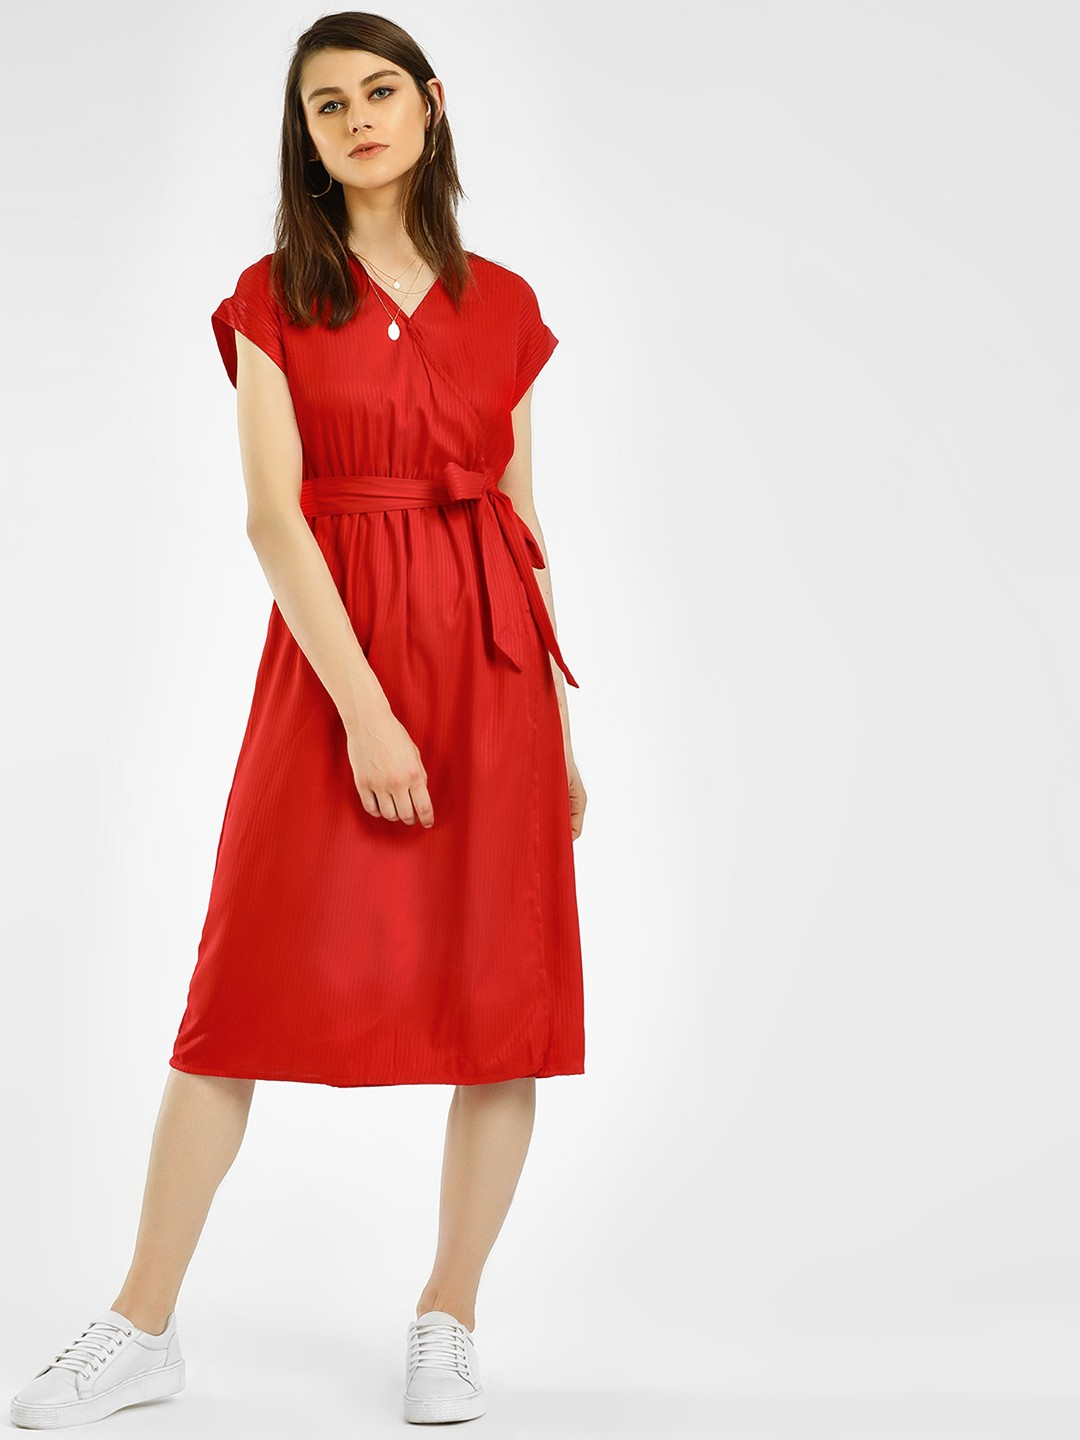 Vero Moda Red Basic Wrap Midi Dress 1